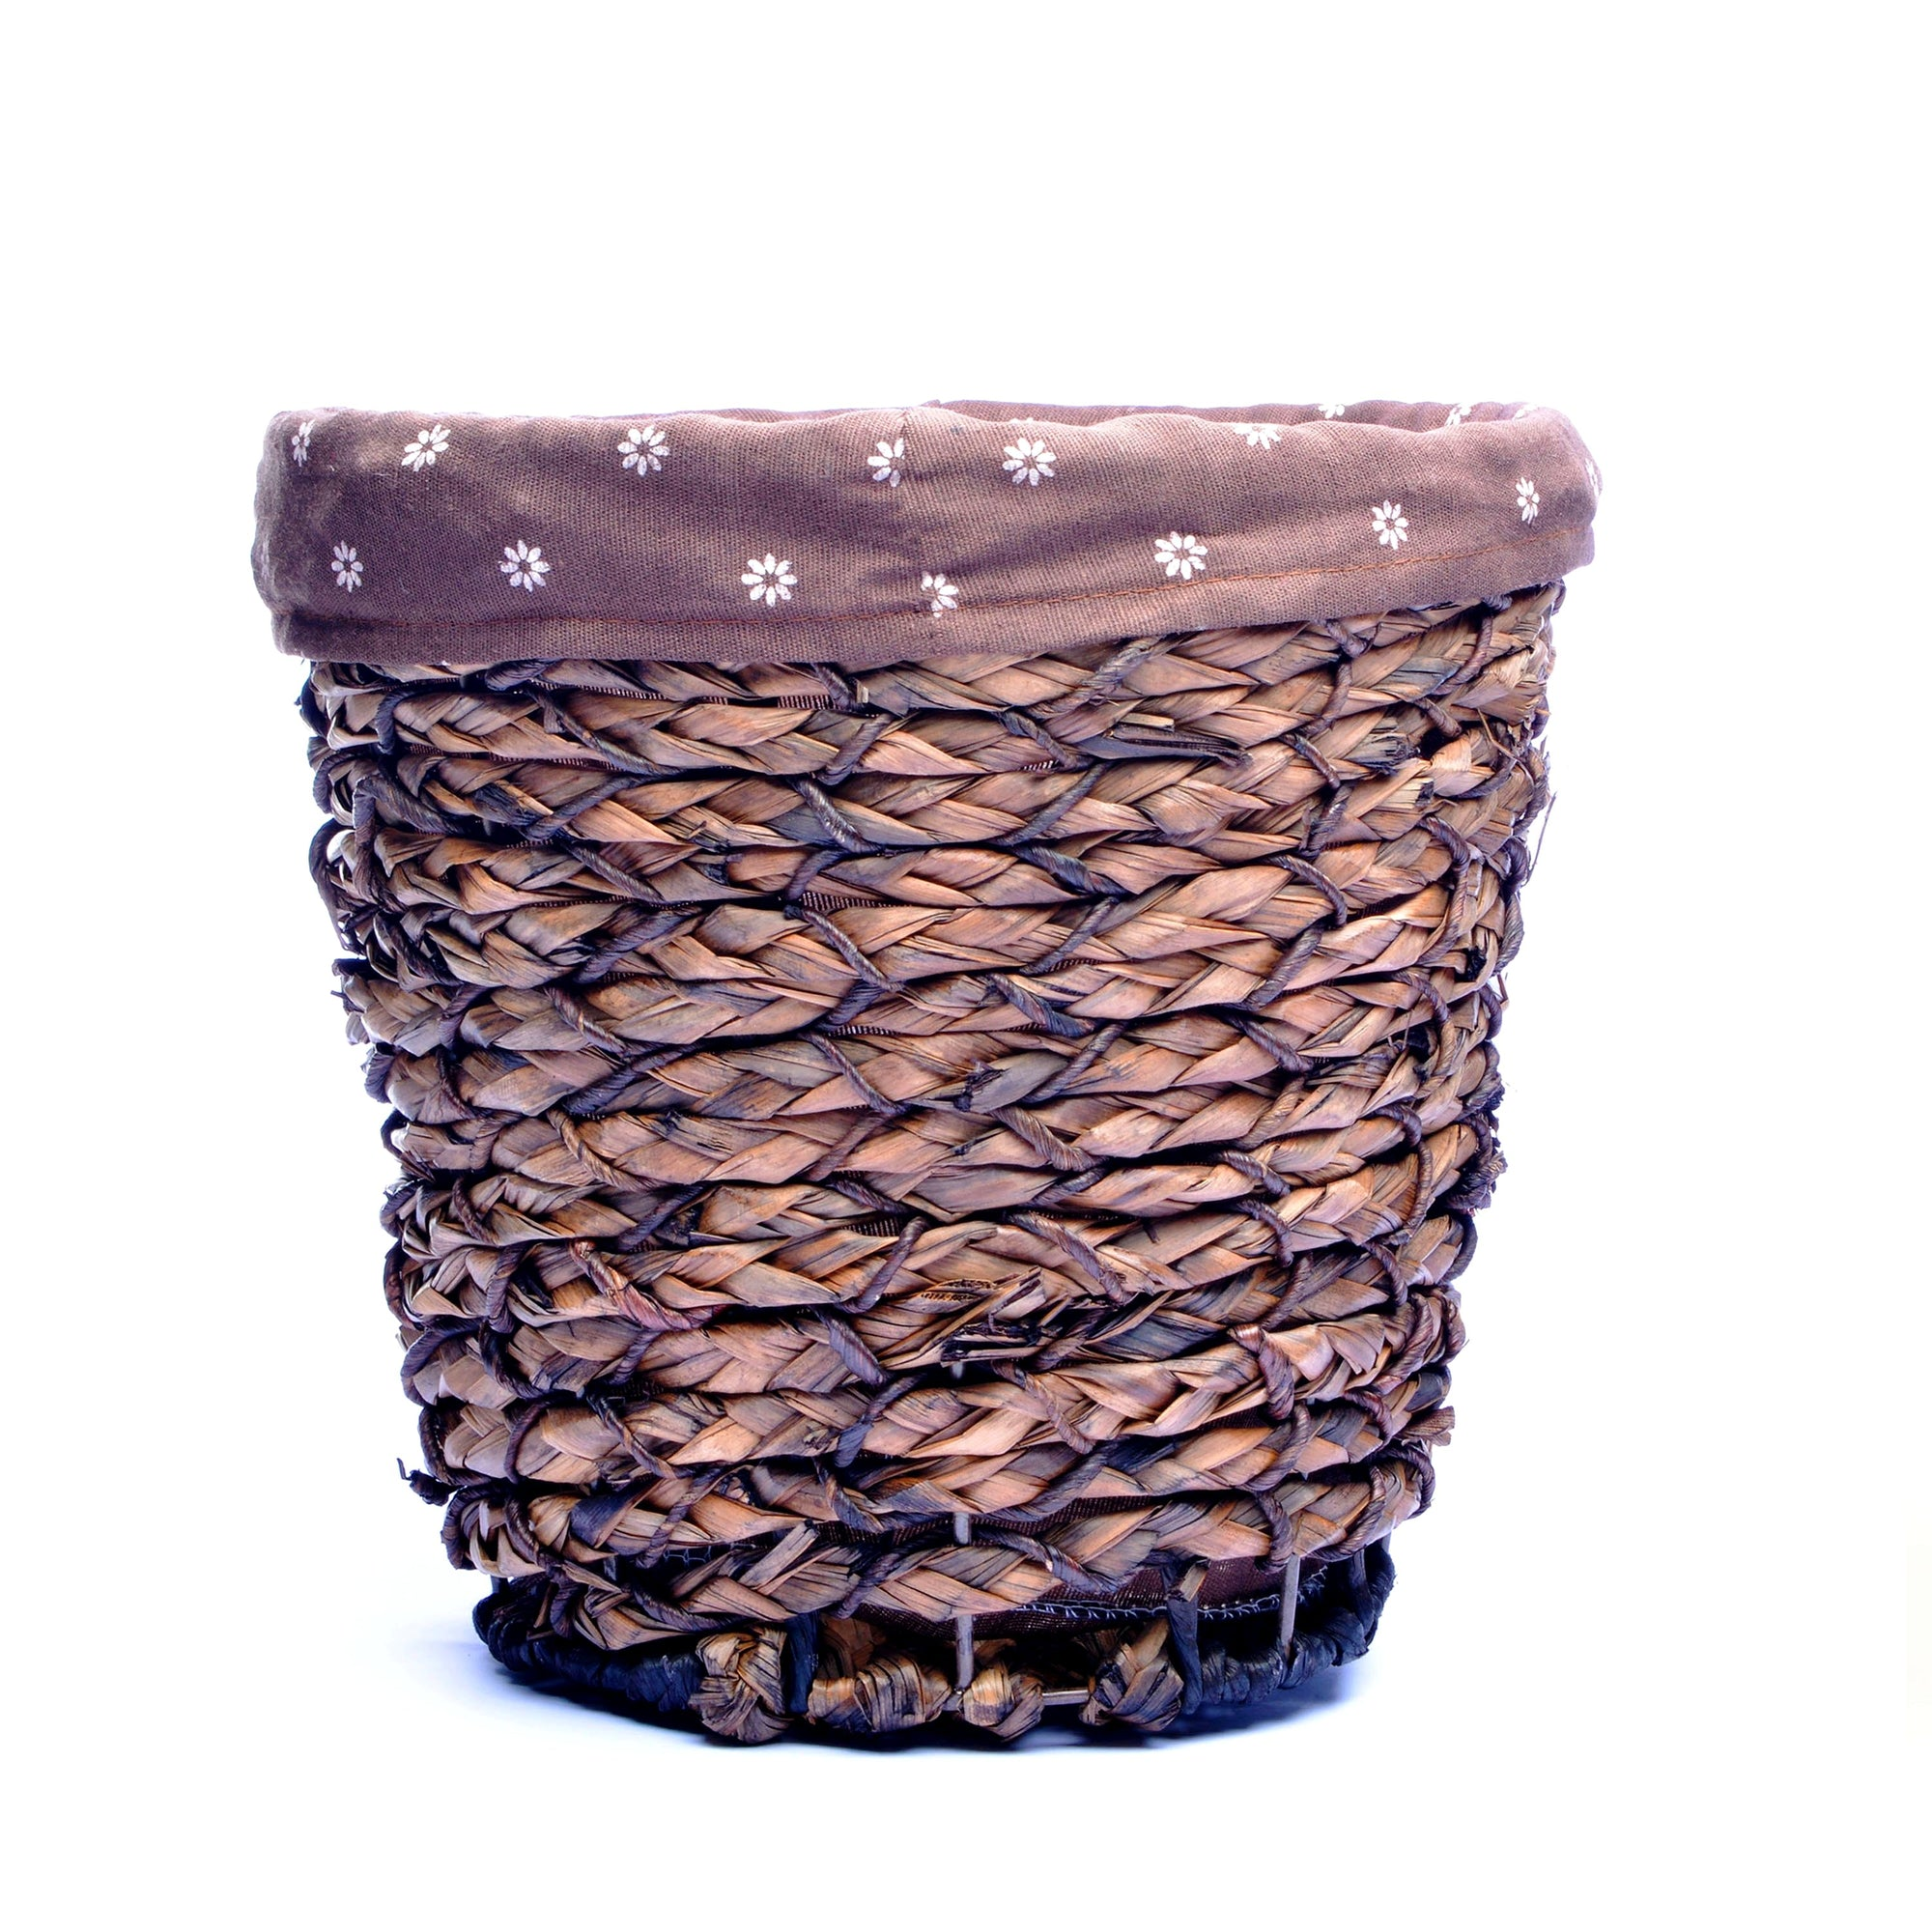 Plant Fiber Basket with tissue box